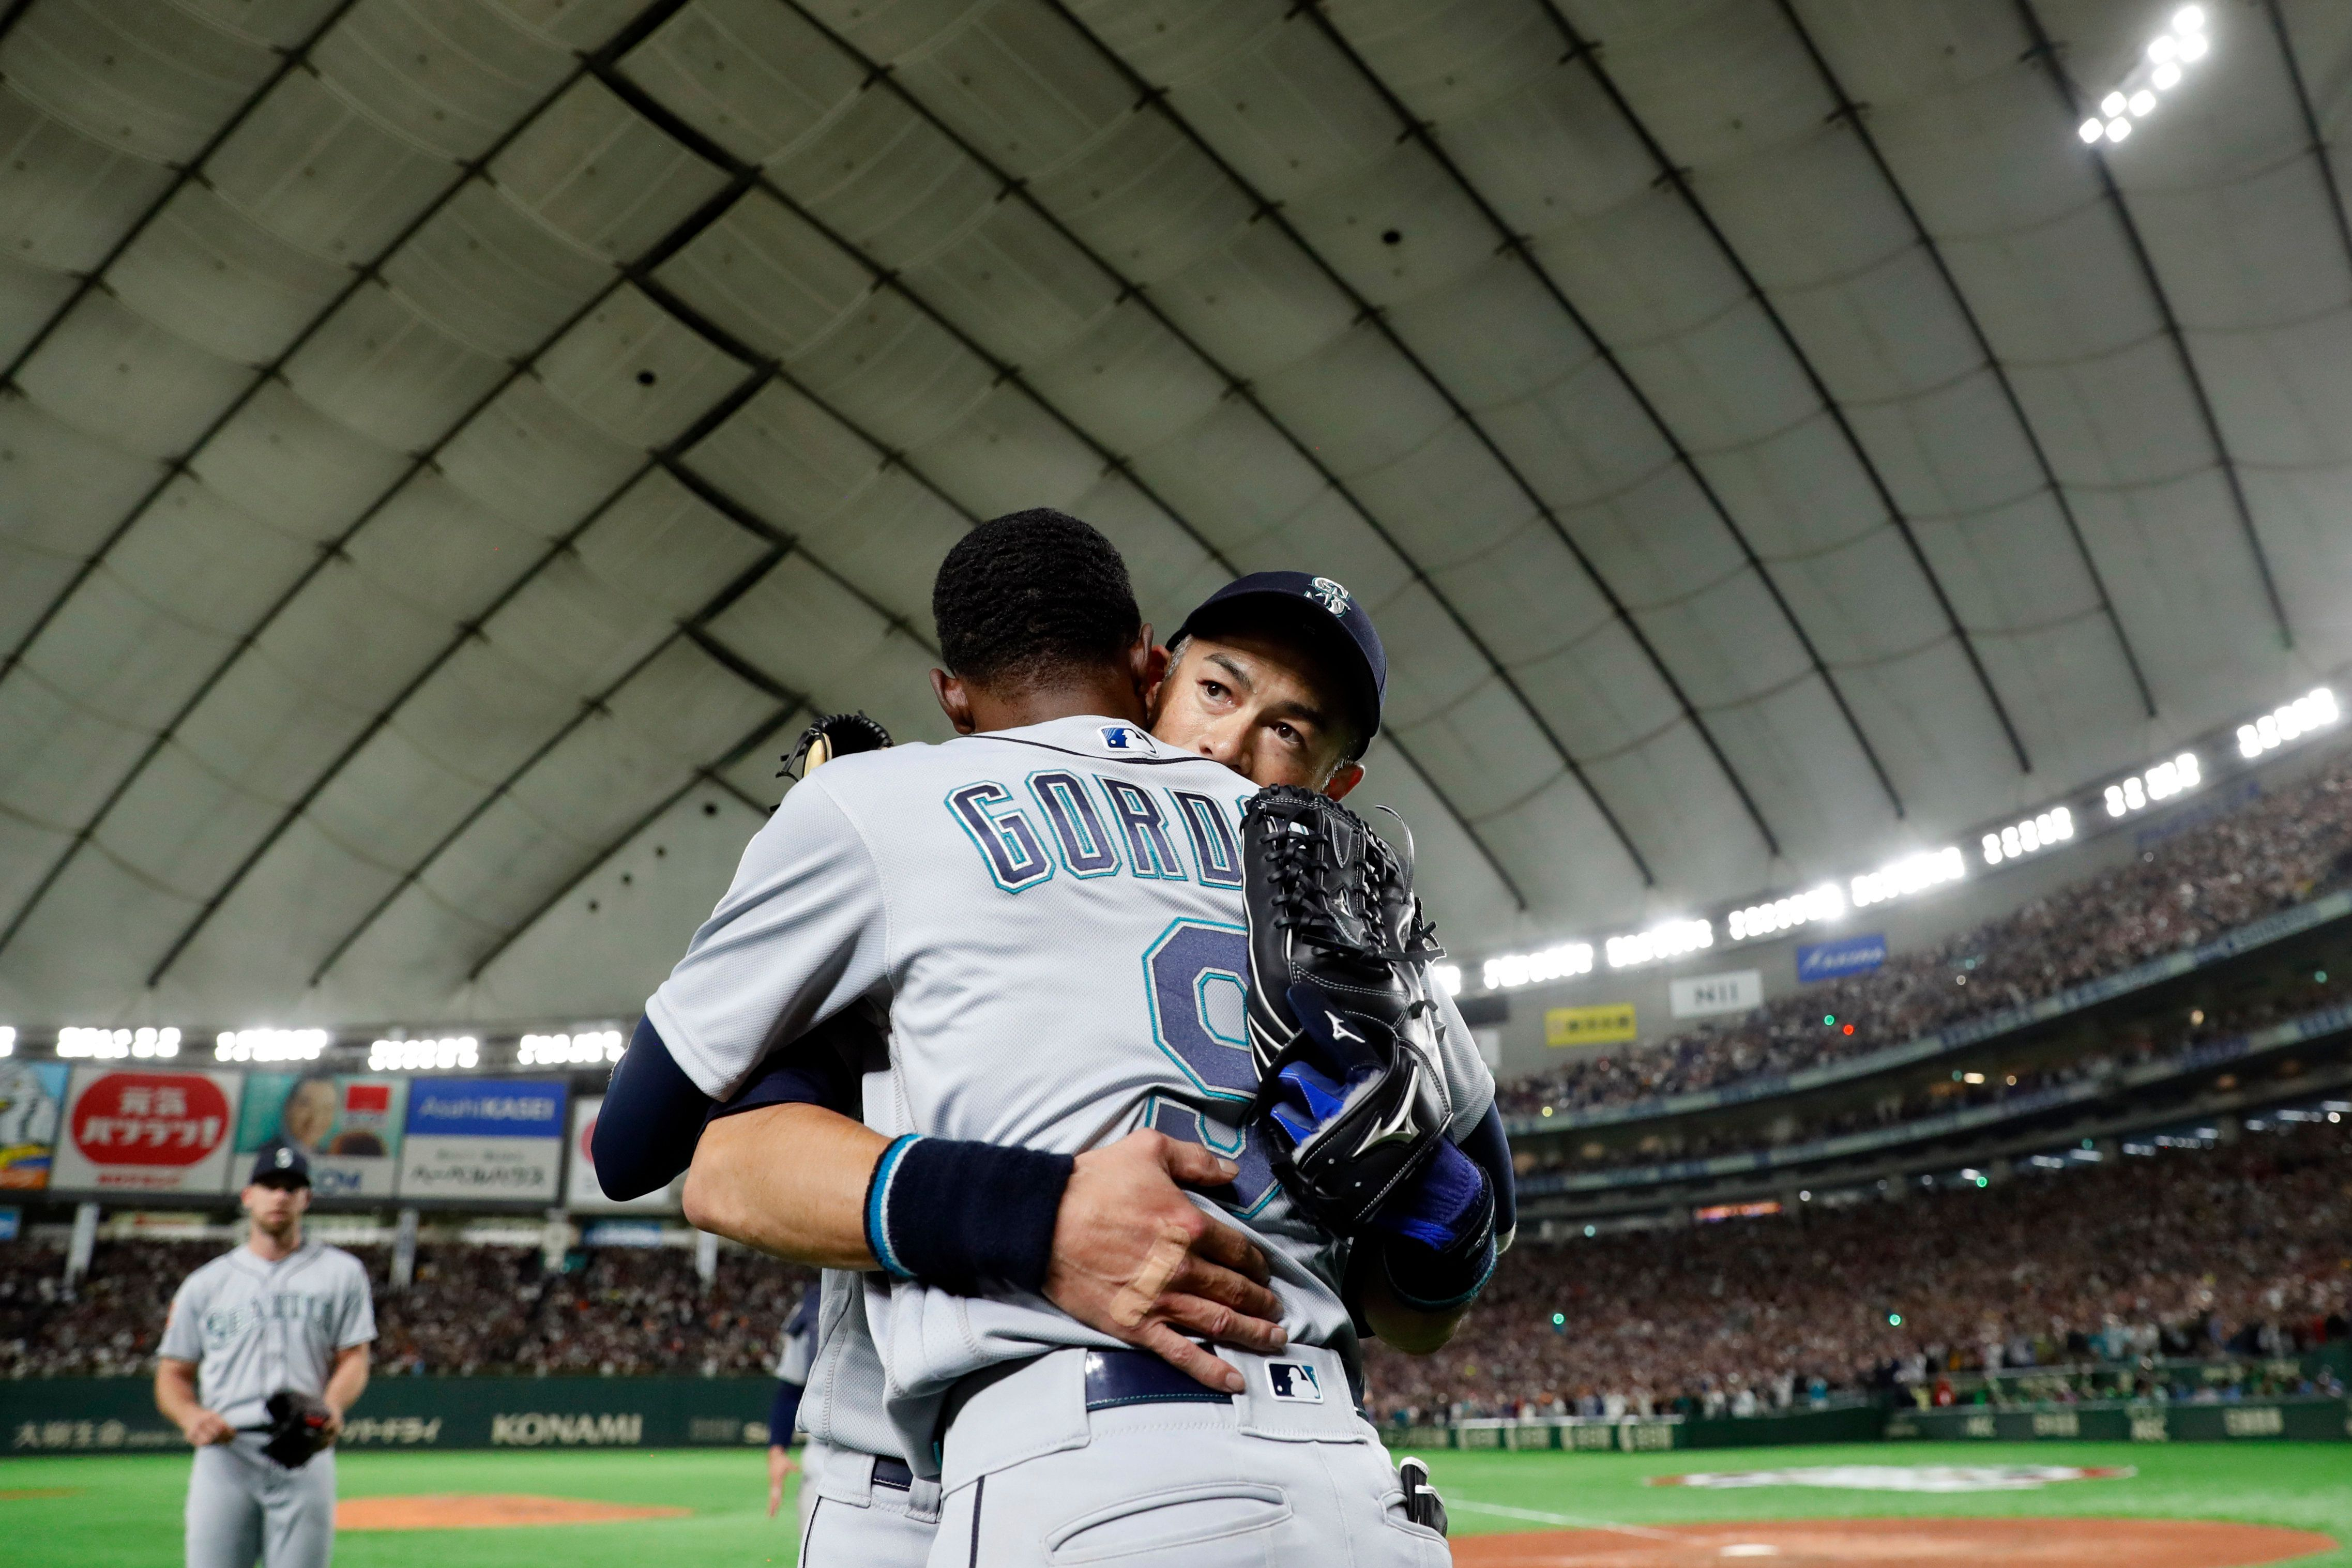 TOKYO, JAPAN - MARCH 21:  Ichiro Suzuki #51 of the Seattle Marines is greeted by teammate Dee Gordon #9 after being taken out for a defensive replacement during the game against the Oakland Athletics during the 2019 Opening Series at the Tokyo Dome on Thursday, March 21, 2019 in Tokyo, Japan. (Photo by Yuki Taguchi/MLB Photos via Getty Images)